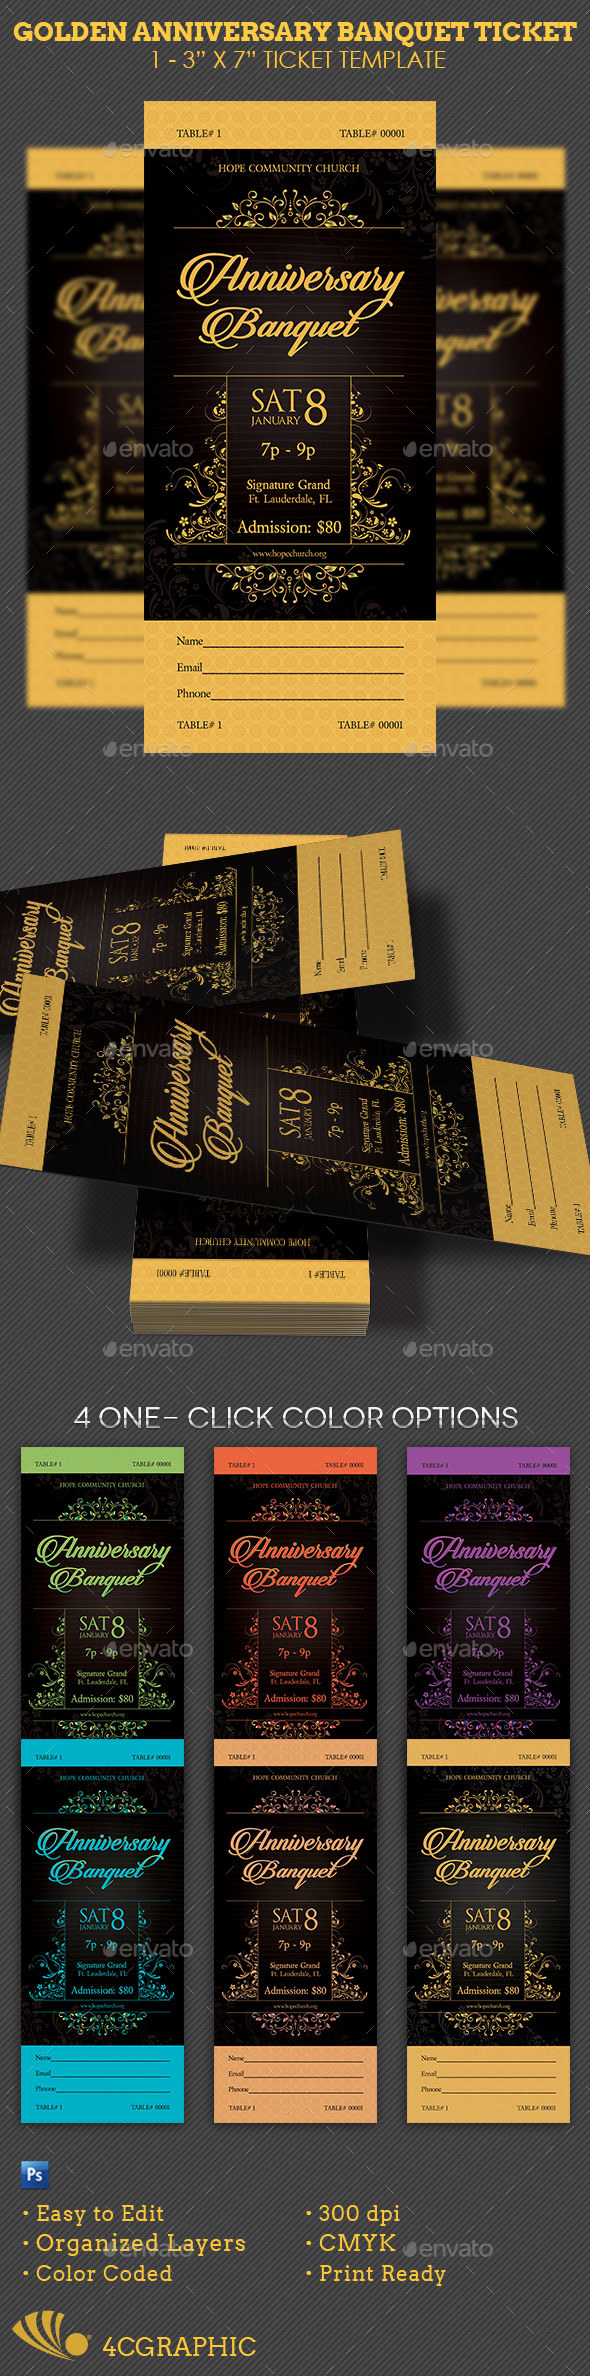 Golden Anniversary Banquet Ticket Template - Miscellaneous Print Templates